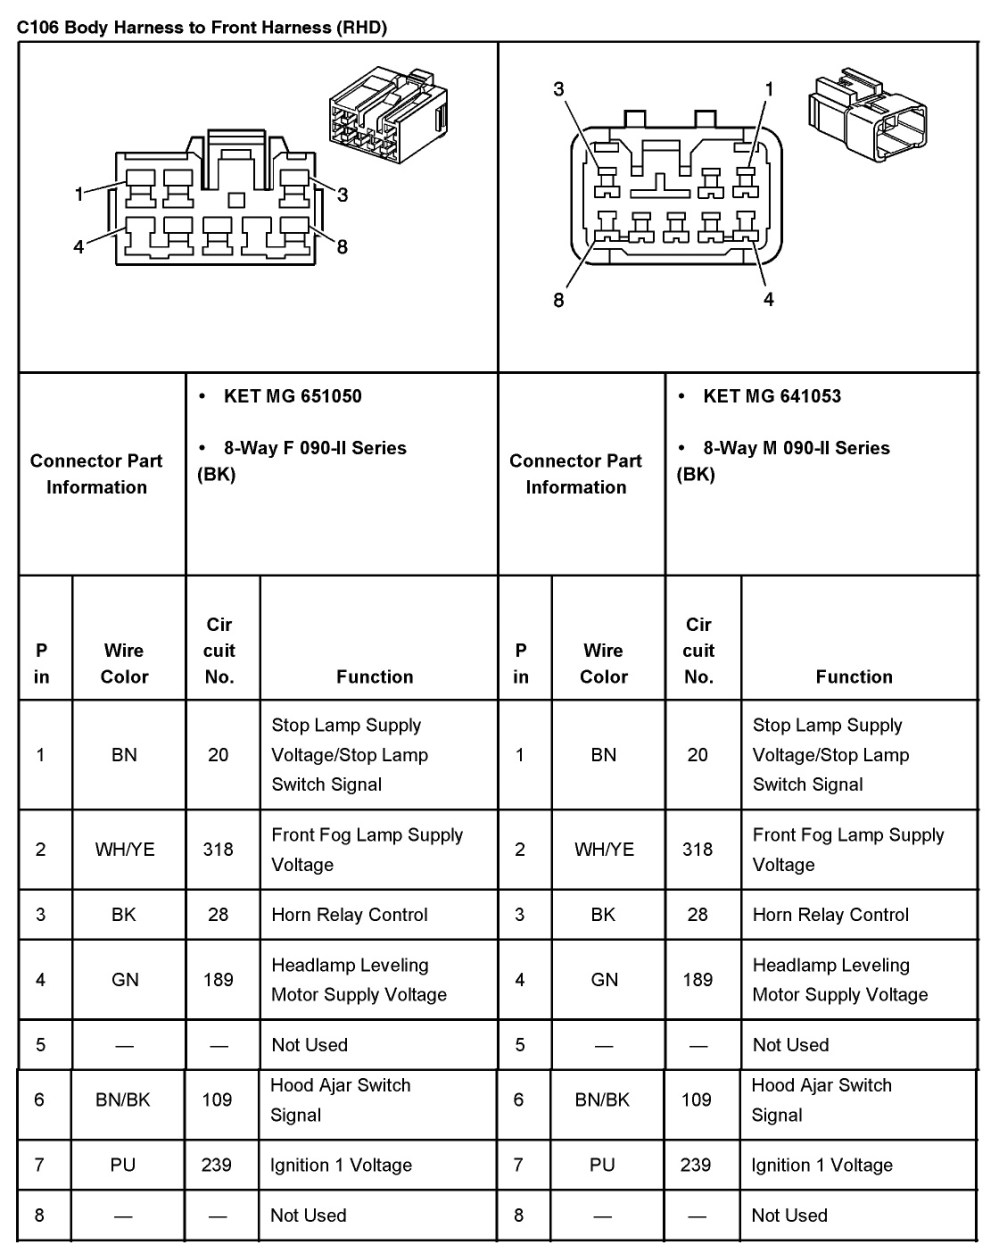 medium resolution of fuse panel diagram for 2005 chevy aveo wiring diagram todayfuse panel diagram for 2005 chevy aveo